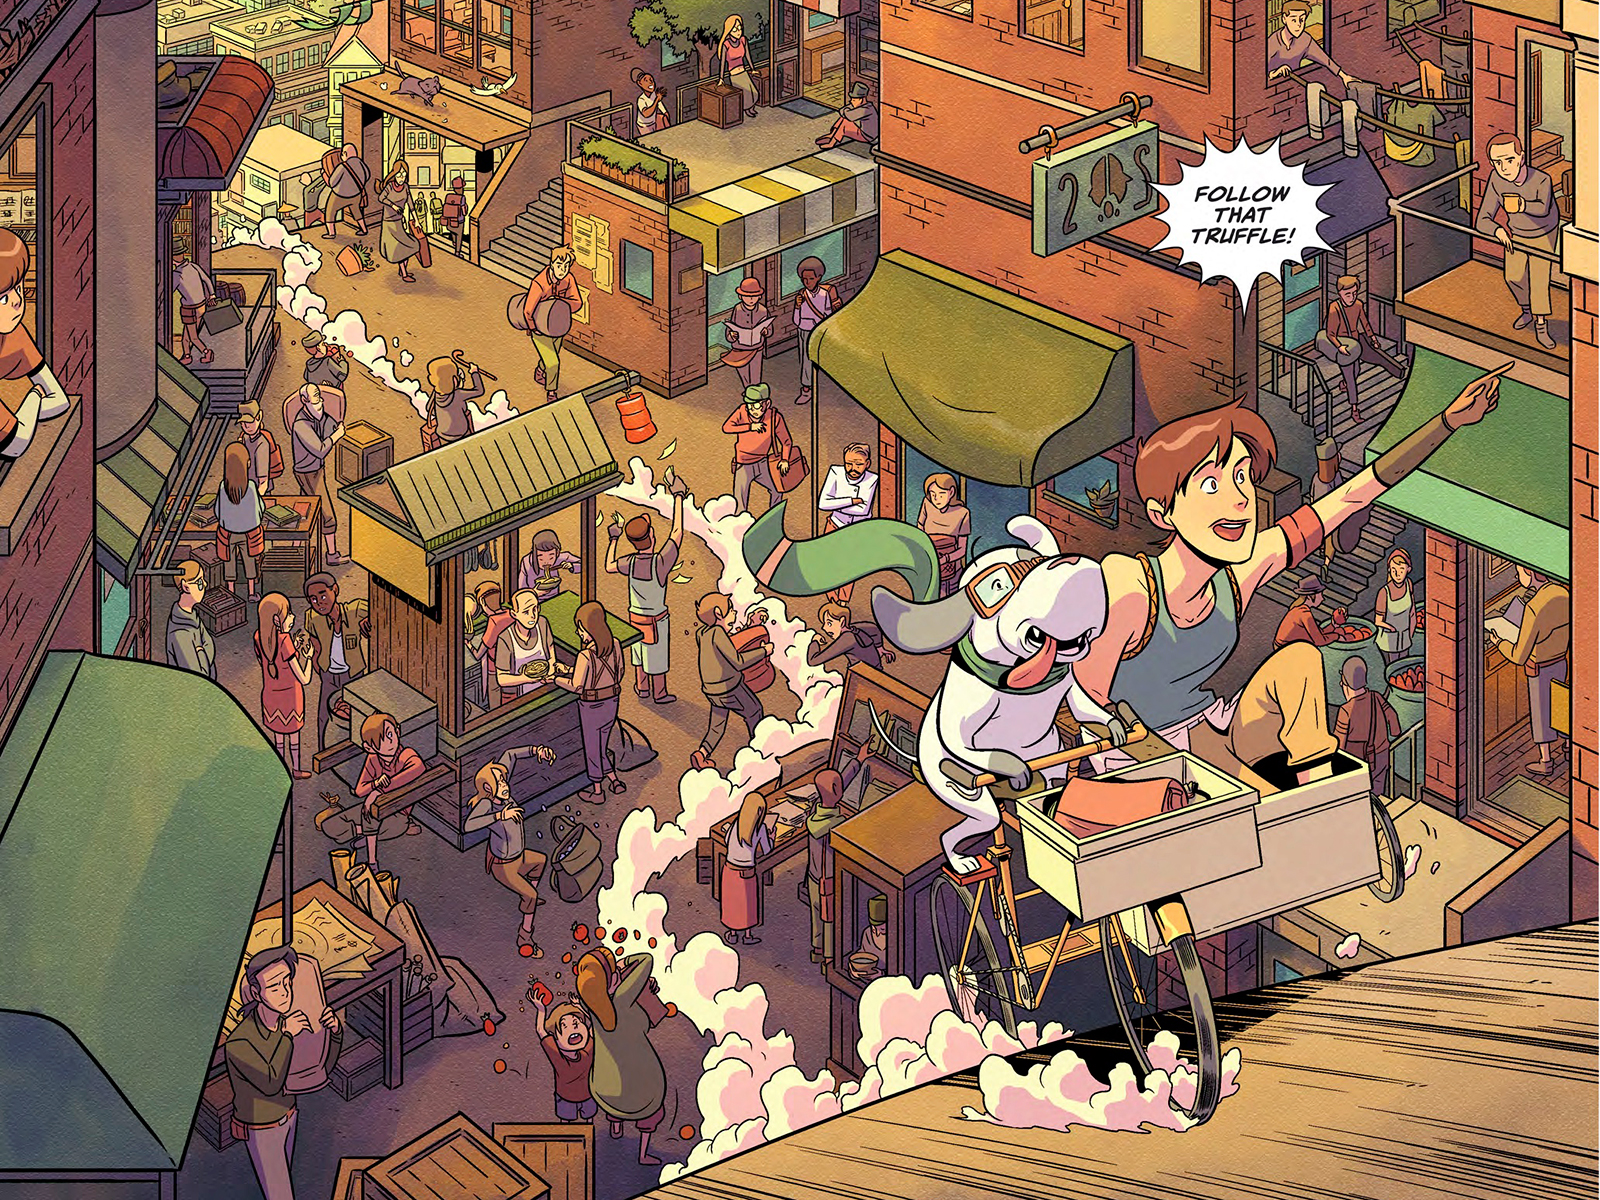 Comic Book Series 'Flavor' Puts Chefs at the Center of a 'Hunger Games'-esque Mystery